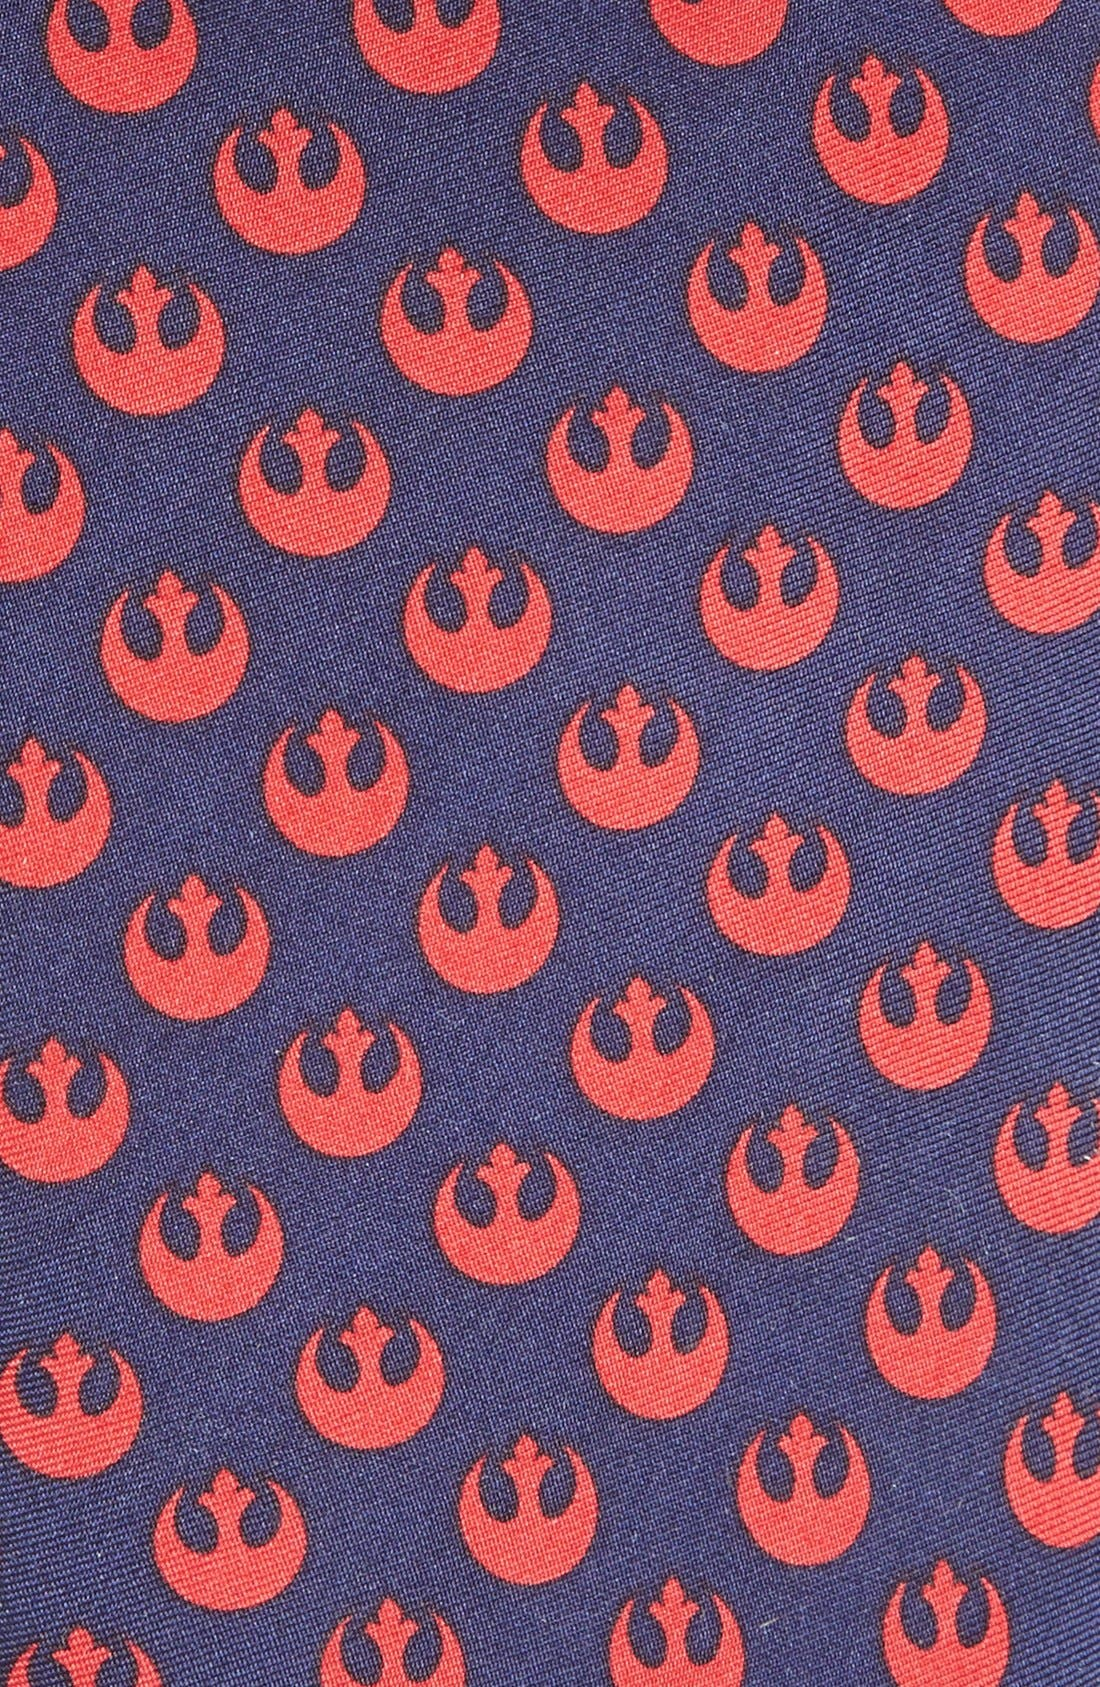 Star Wars<sup>™</sup> - Rebel' Silk Tie,                             Alternate thumbnail 2, color,